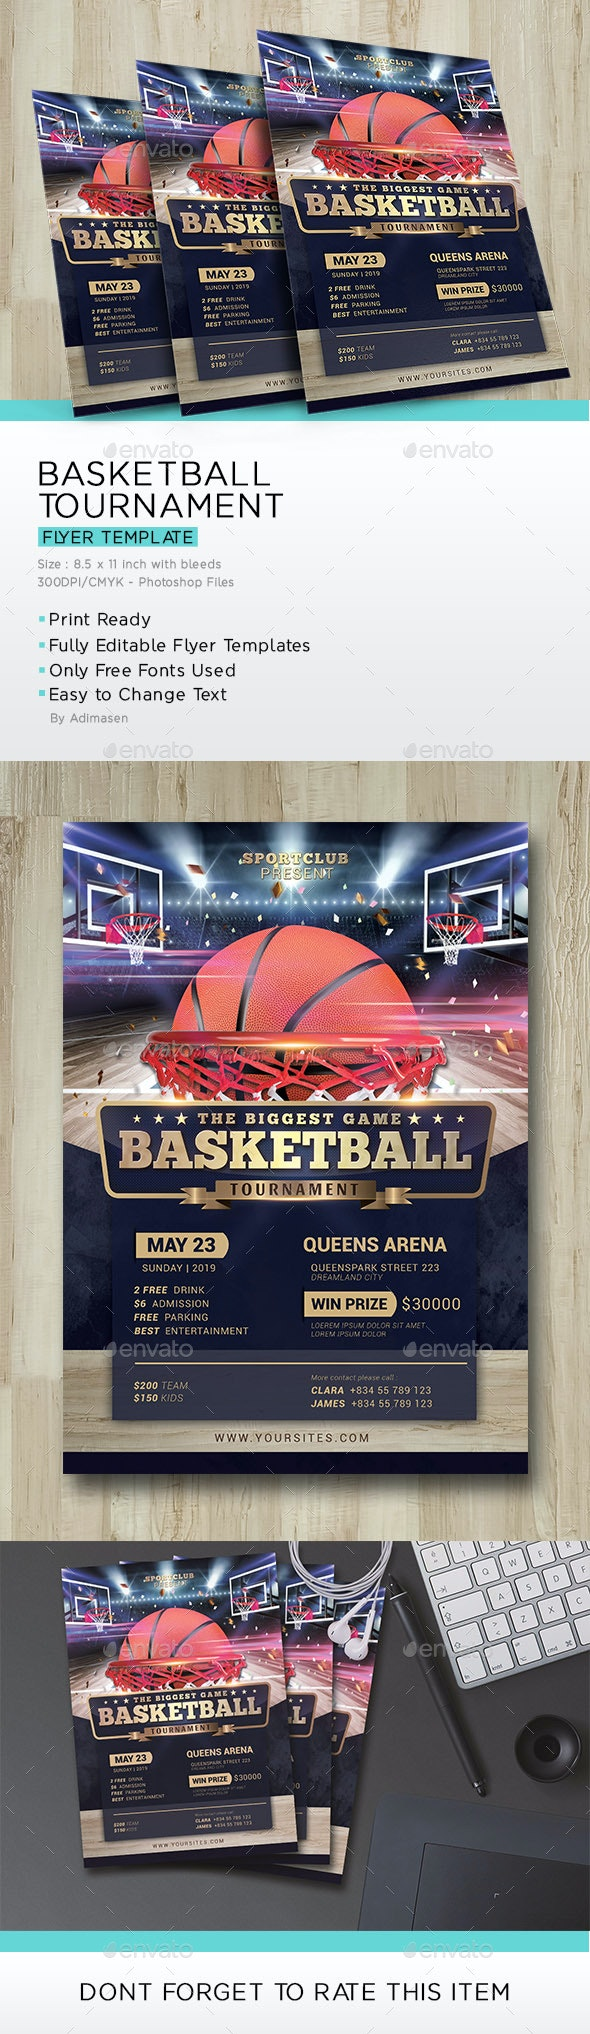 Basketball Tournament Flyer - Sports Events